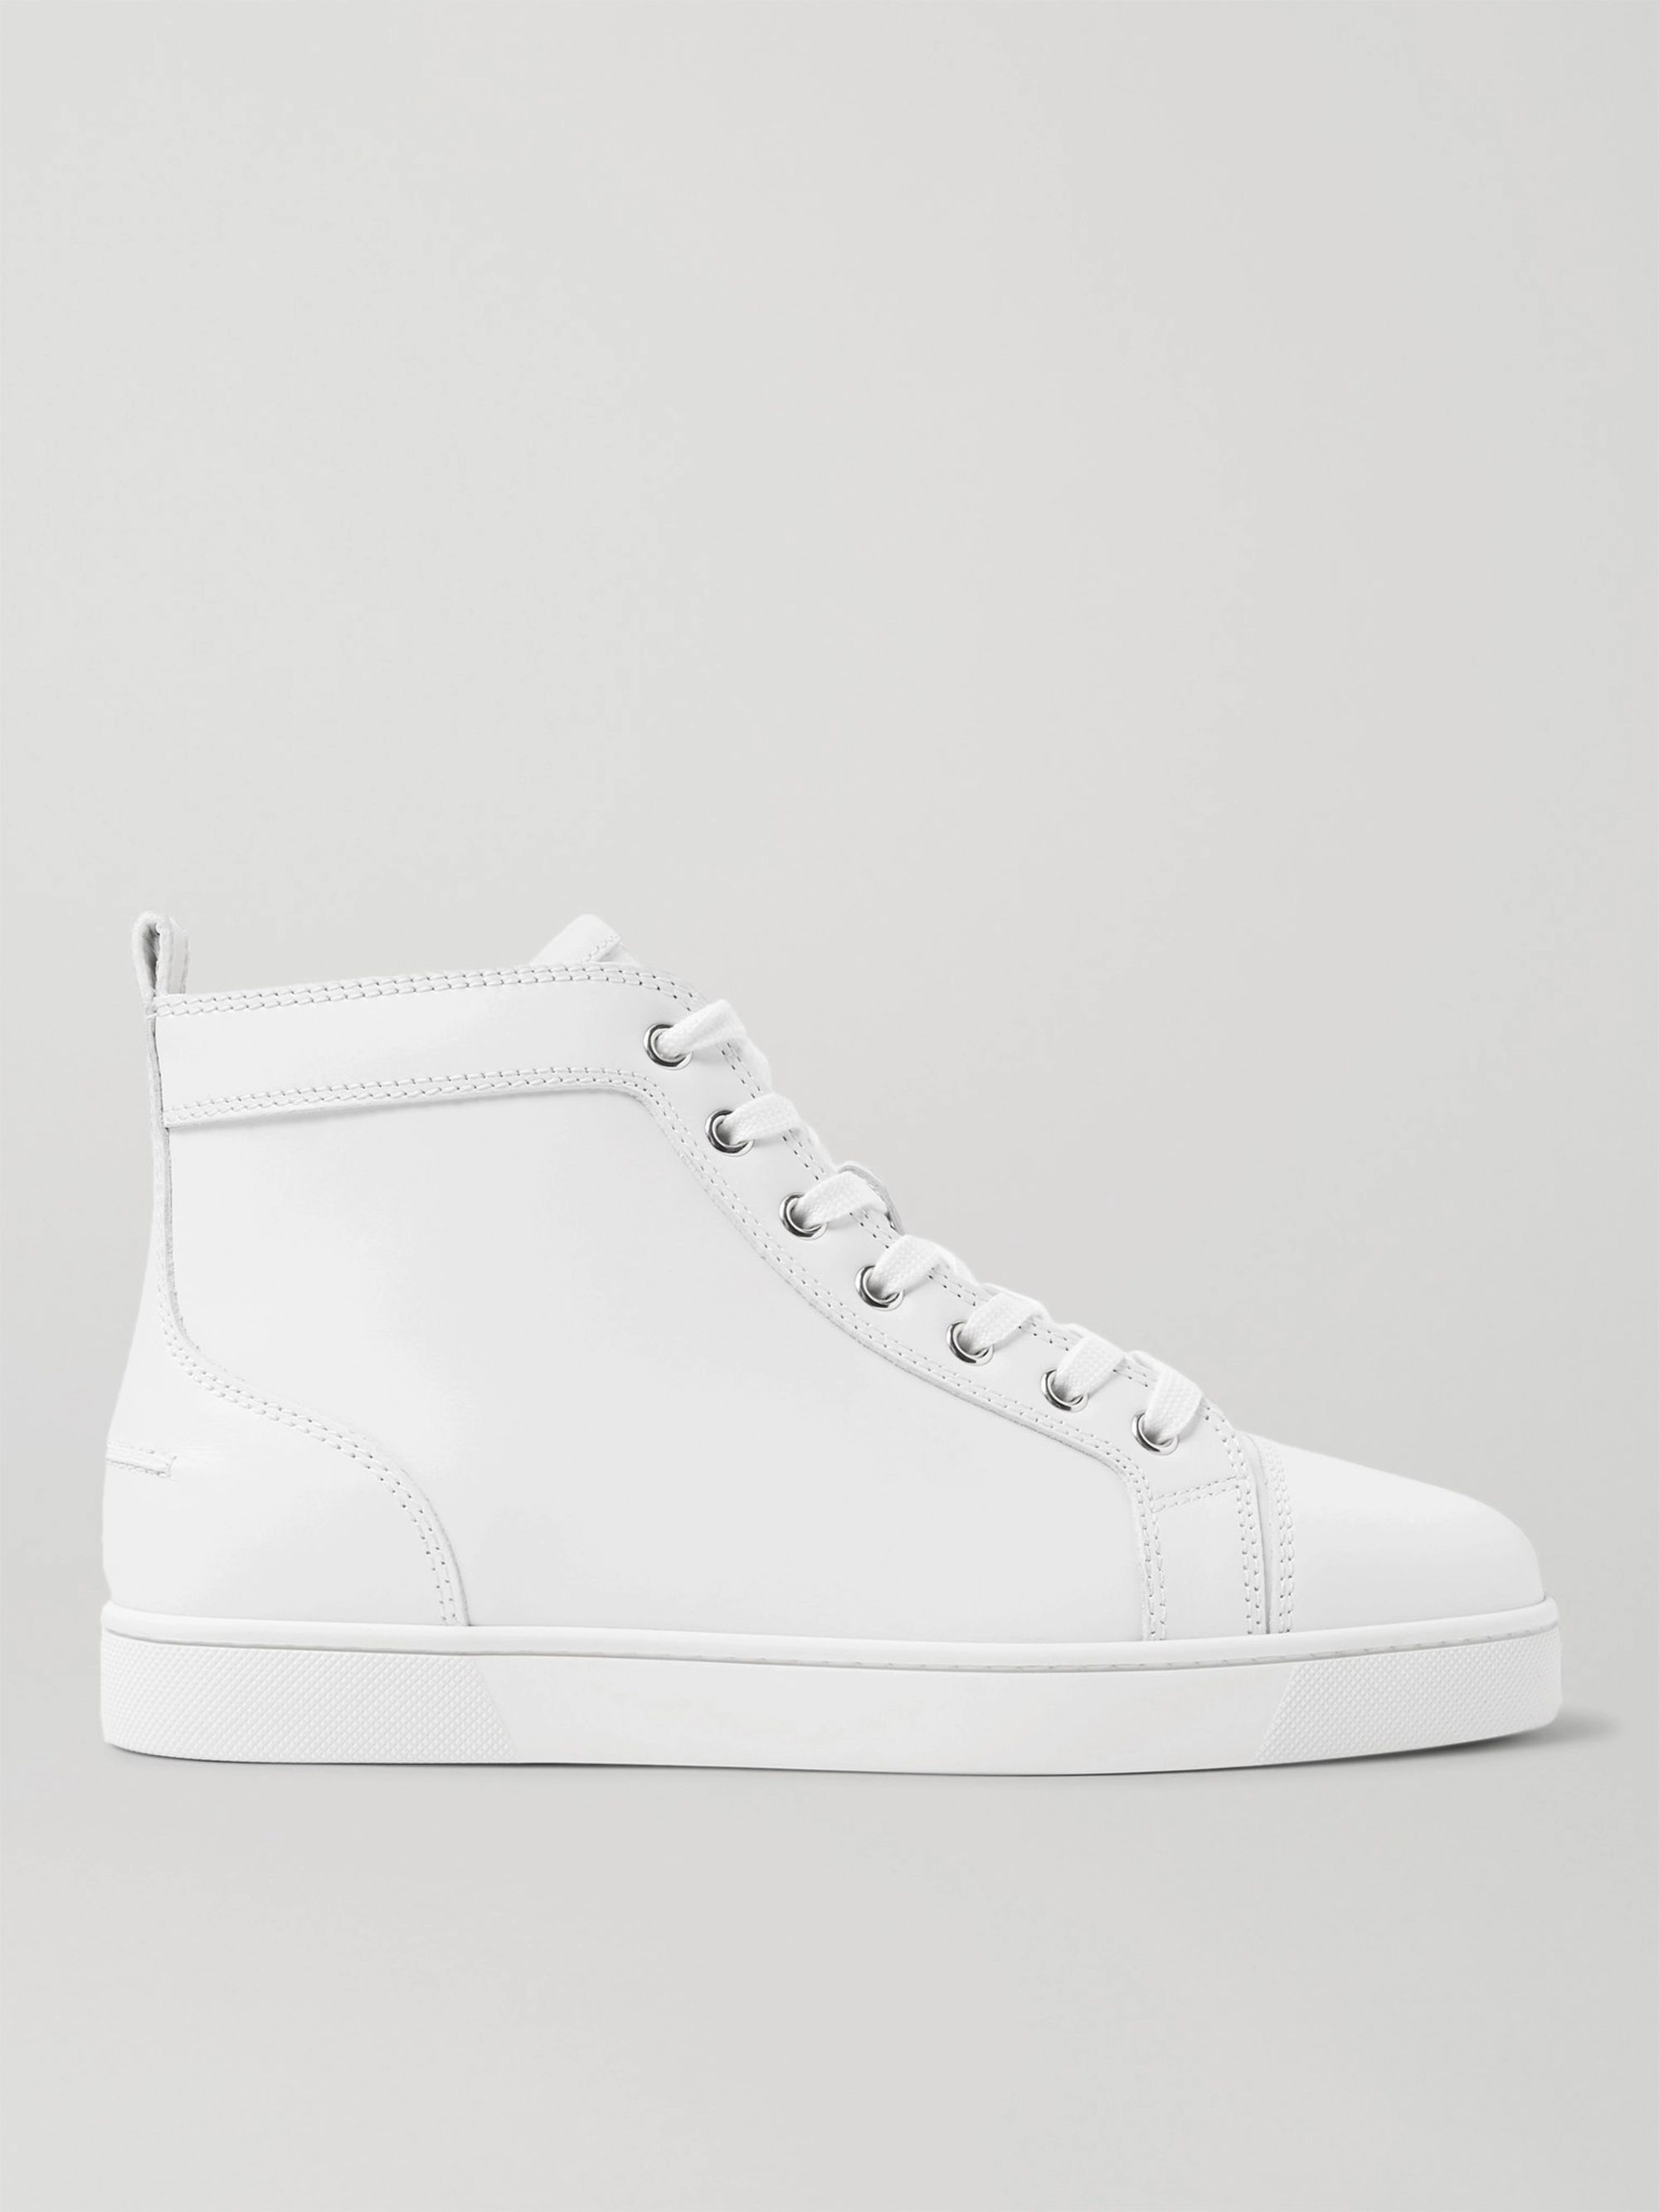 Christian Louboutin Louis Leather High-Top Sneakers